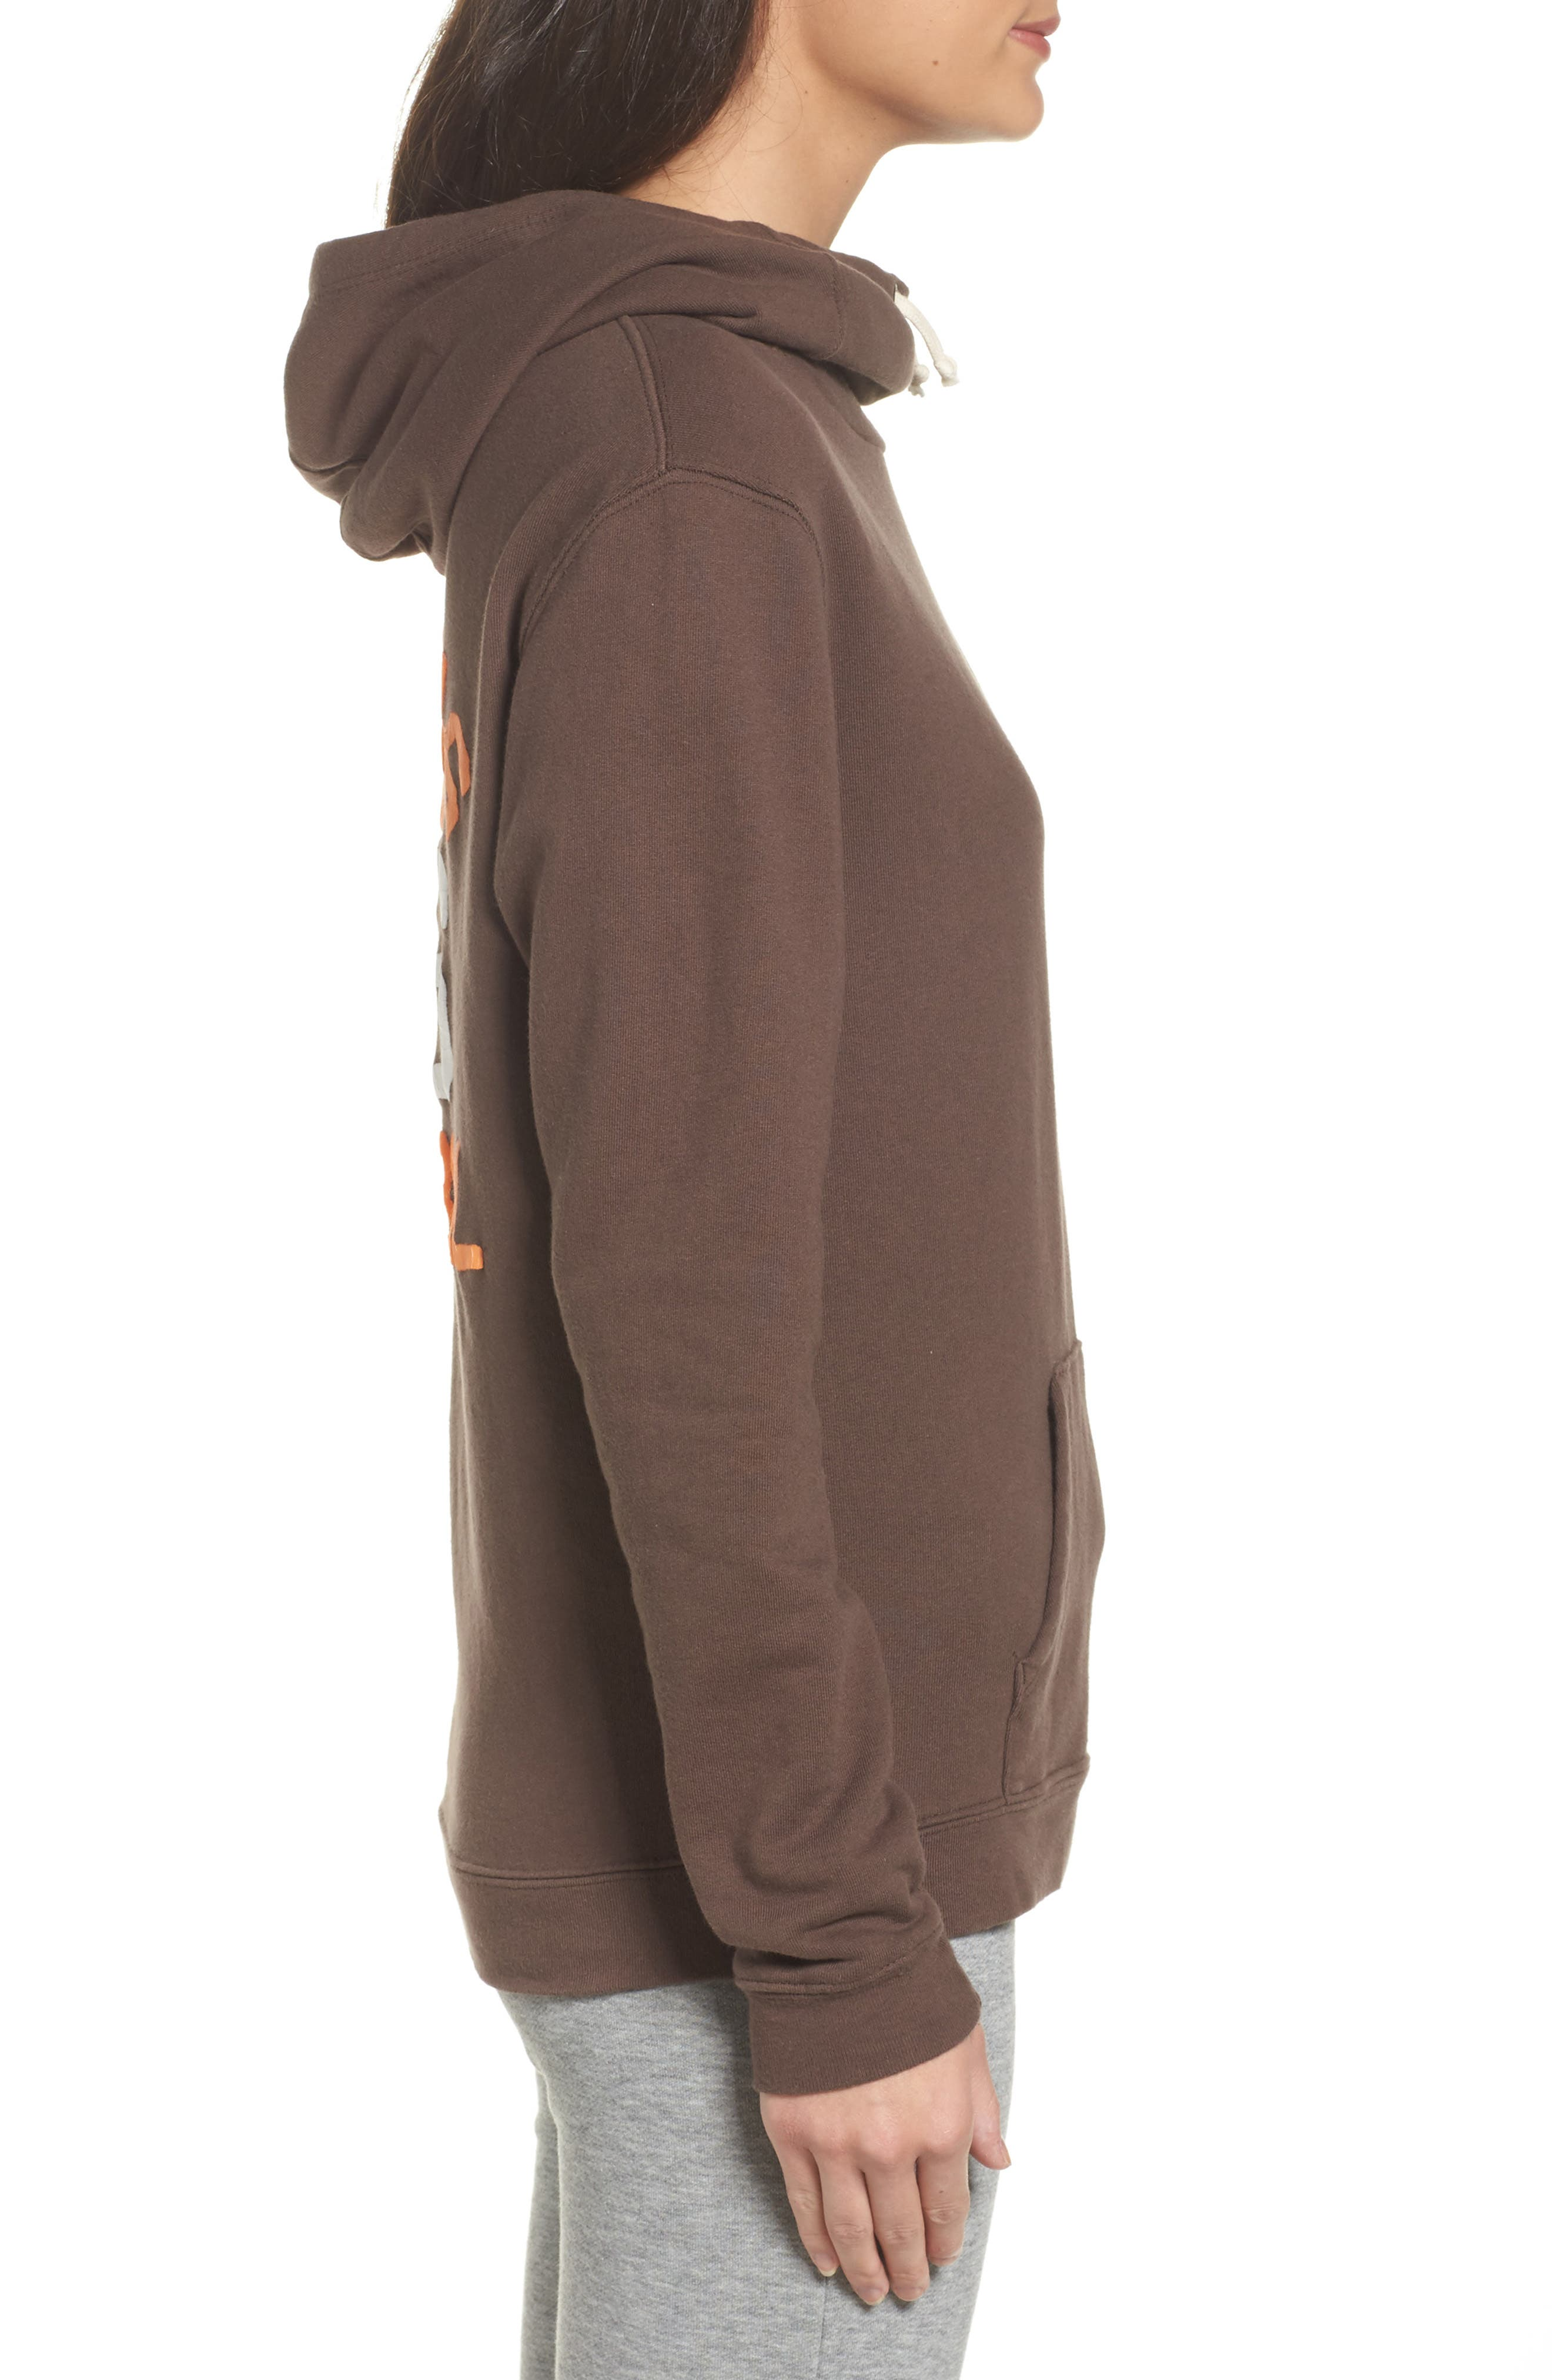 NFL Cleveland Browns Sunday Hoodie,                             Alternate thumbnail 3, color,                             200